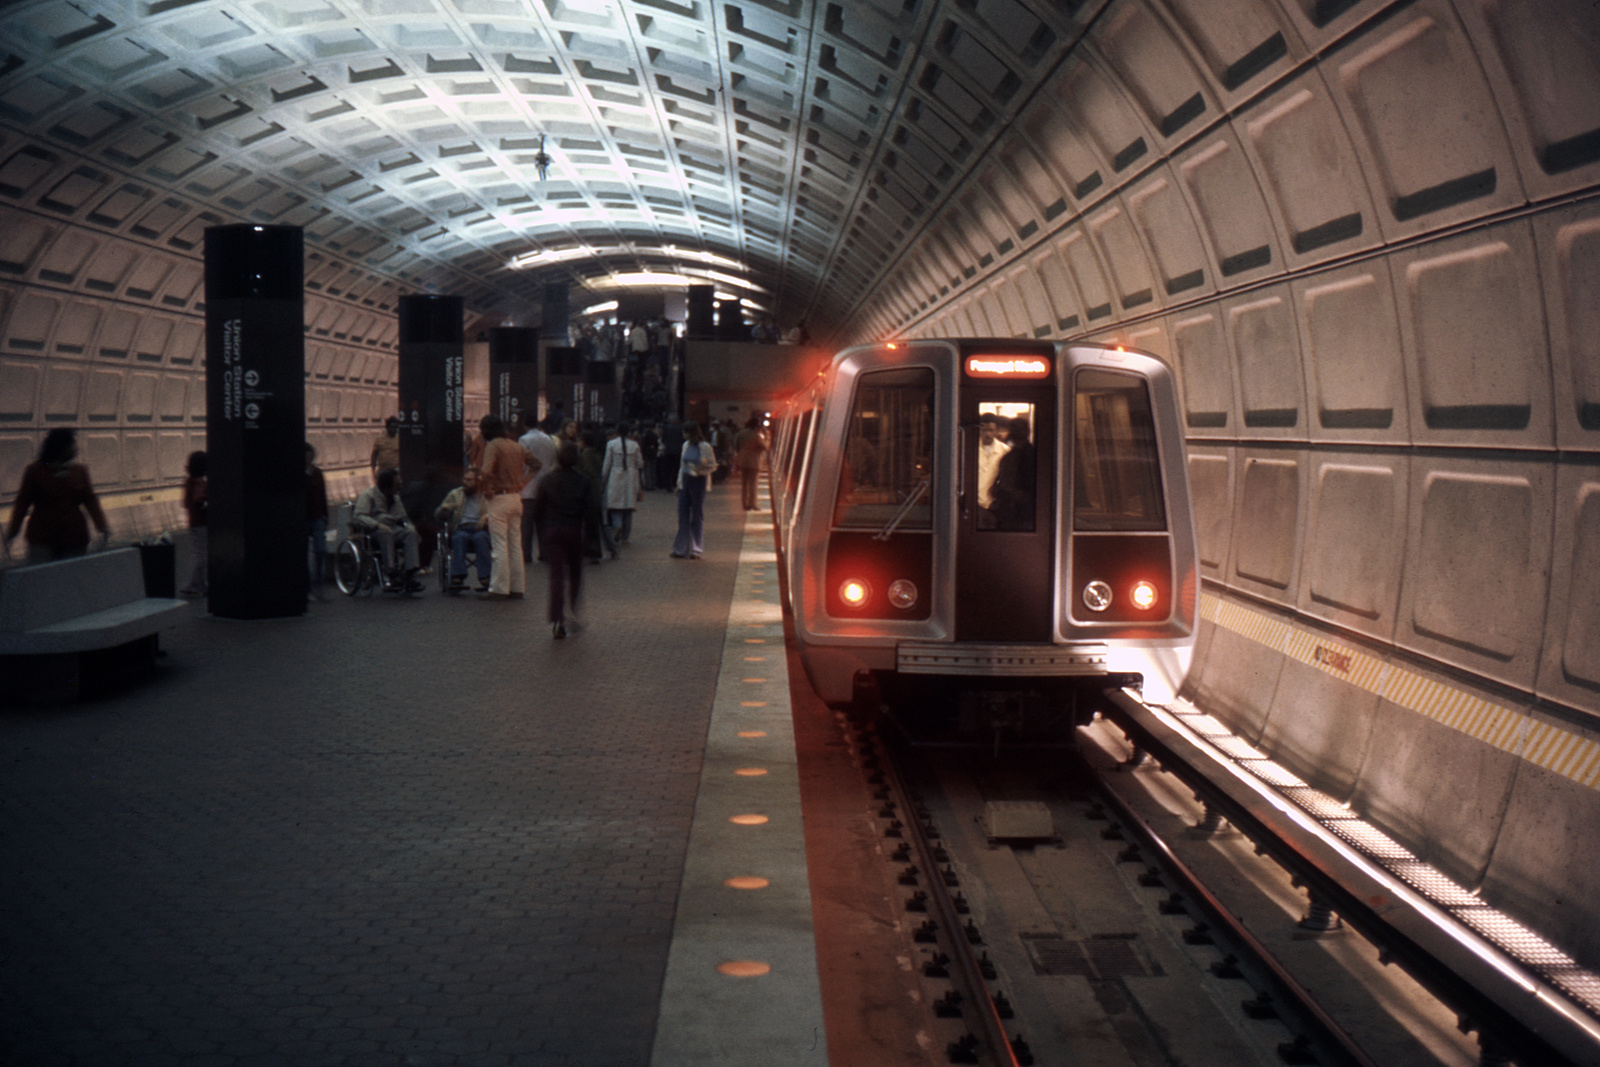 (346k, 1044x708)<br><b>Country:</b> United States<br><b>City:</b> Washington, D.C.<br><b>System:</b> Washington Metro (WMATA)<br><b>Line:</b> WMATA Red Line<br><b>Location:</b> Union Station <br><b>Collection of:</b> David Pirmann<br><b>Date:</b> 4/1976<br><b>Viewed (this week/total):</b> 18 / 7493